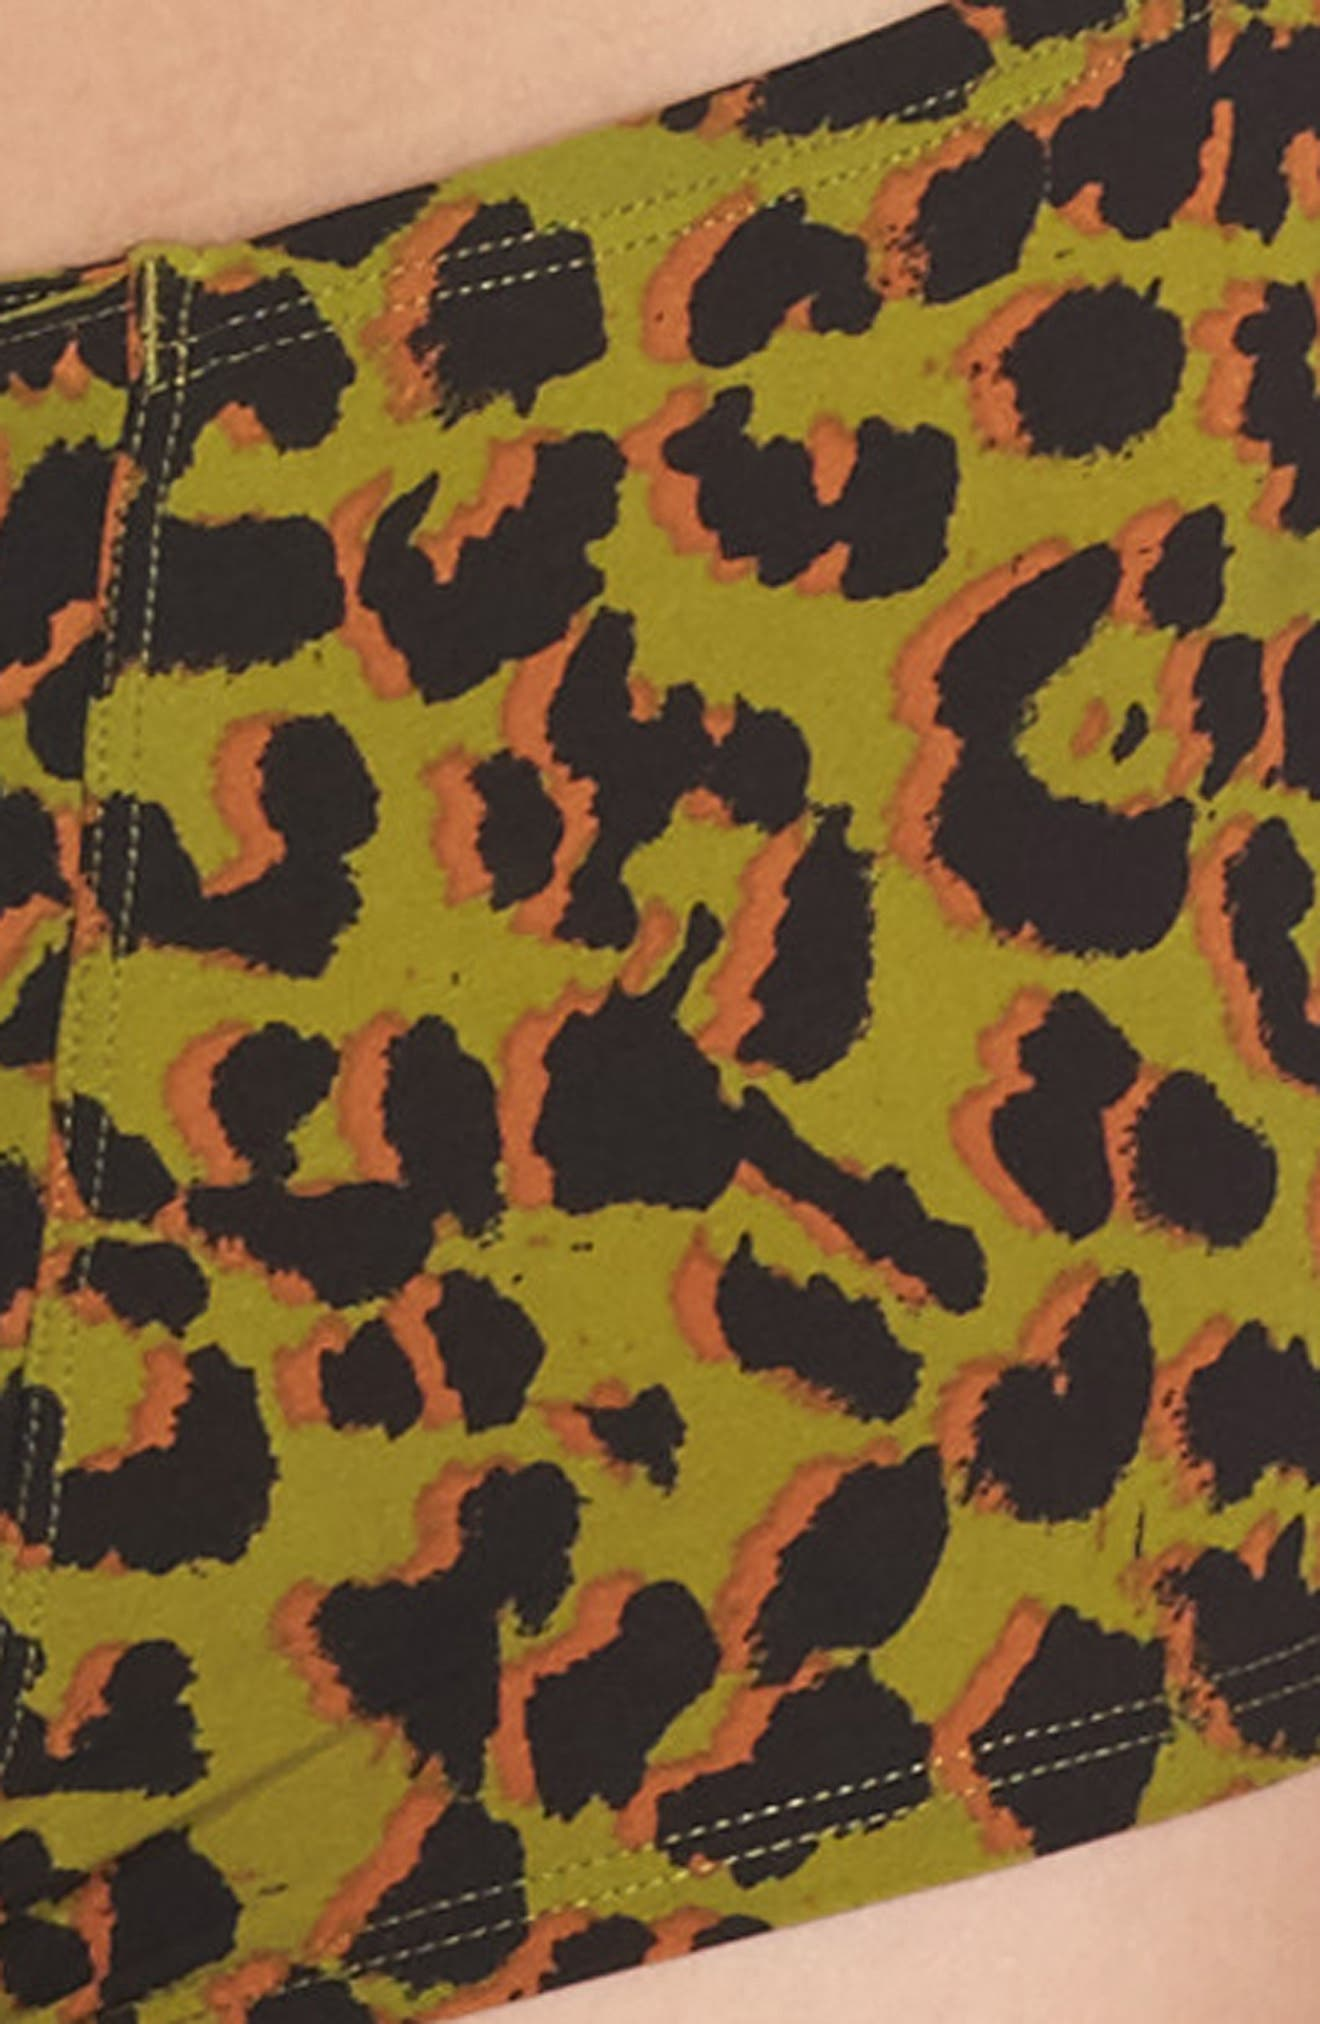 Russel Animal Print Boyshorts,                             Alternate thumbnail 4, color,                             001